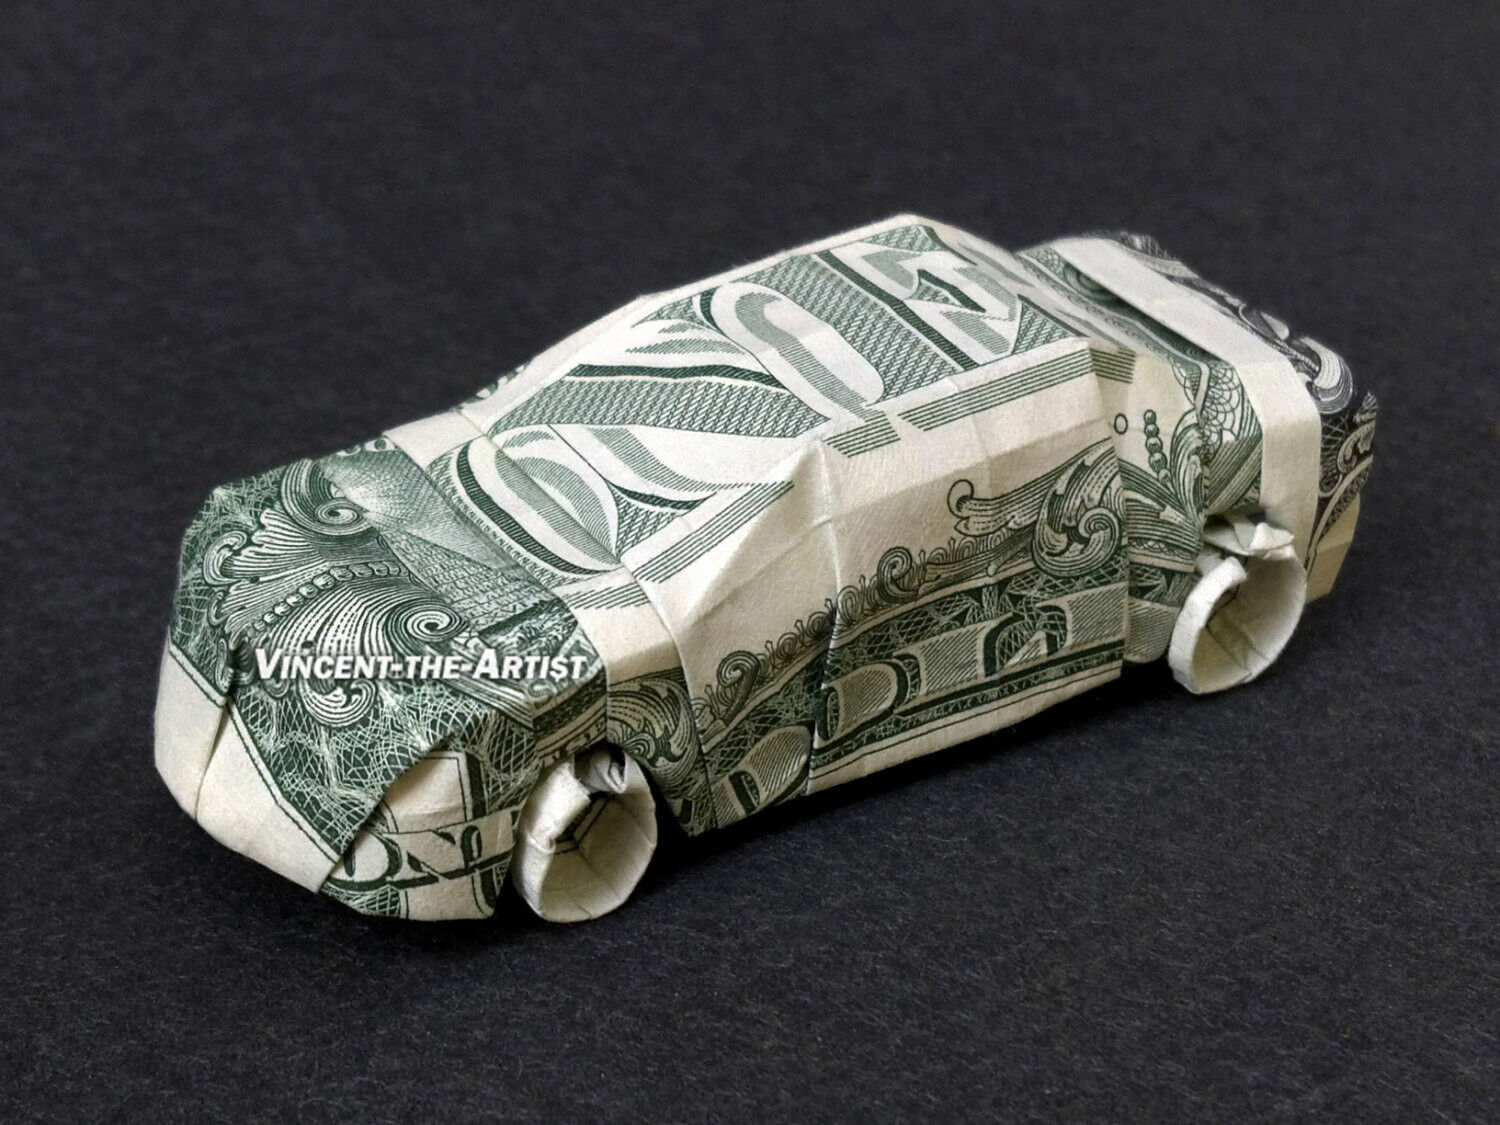 Money Origami Art - Many designs to choose from. Unique ... - photo#24